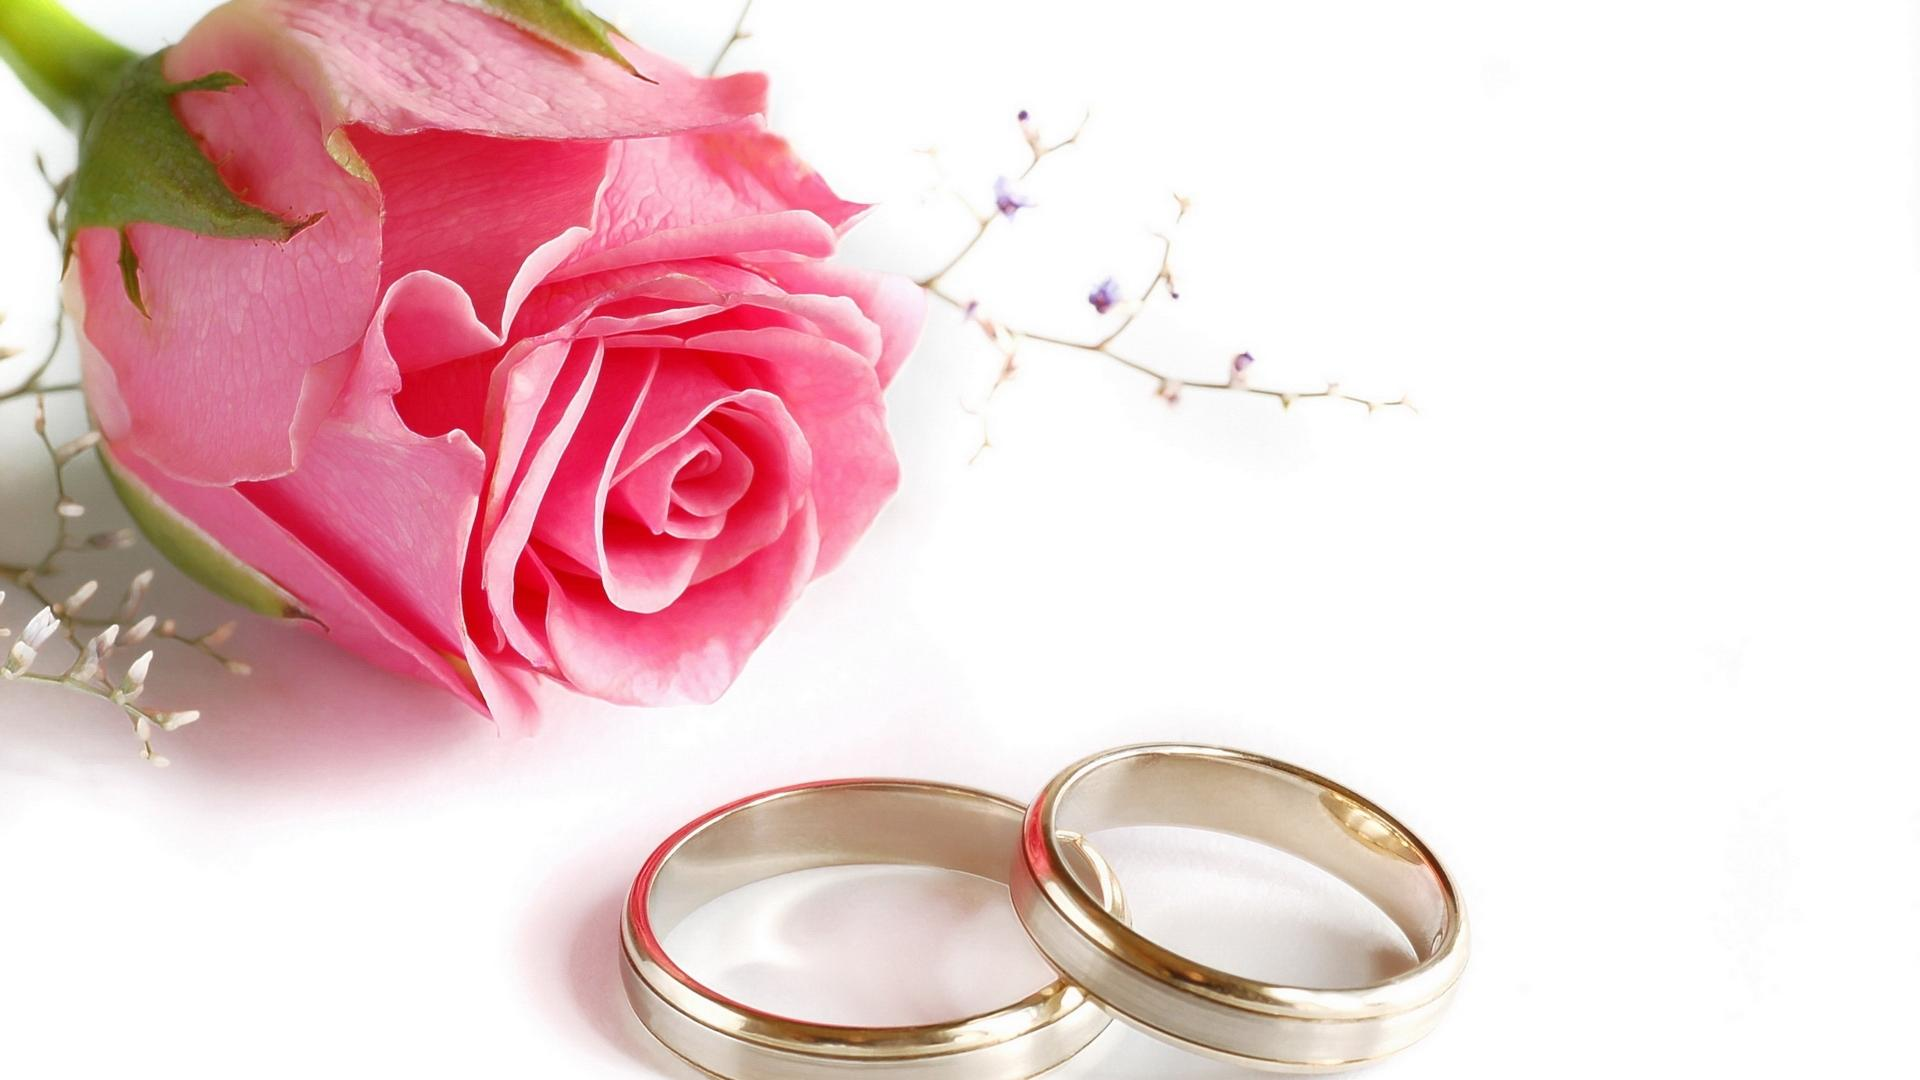 Rose Flower Ring HD Wallpapers